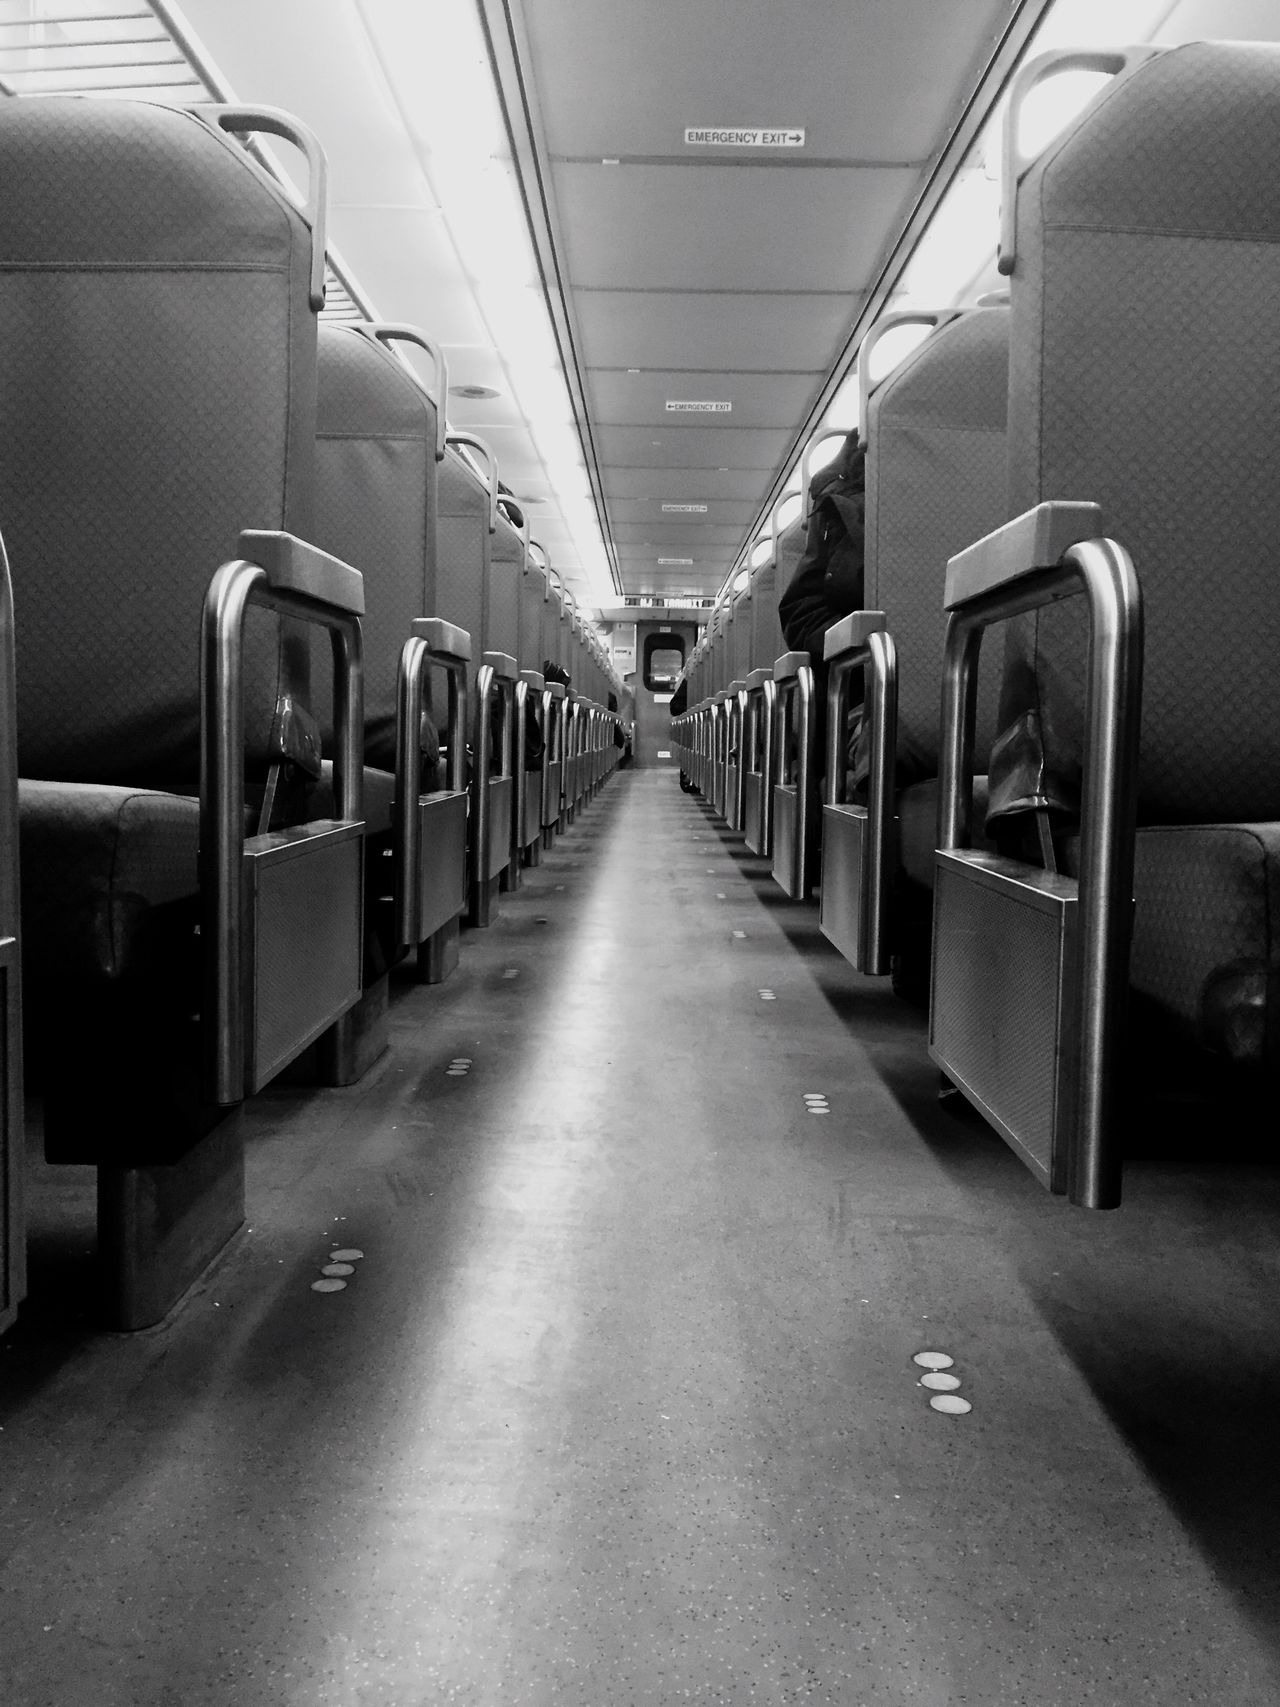 Transit Transportation Mode Of Transport Vehicle Interior Travel Blackandwhite Public Transportation Train - Vehicle Commuter Train Passenger Train Subway Train Train Interior Indoors  People Day EyeEmNewHere NYC